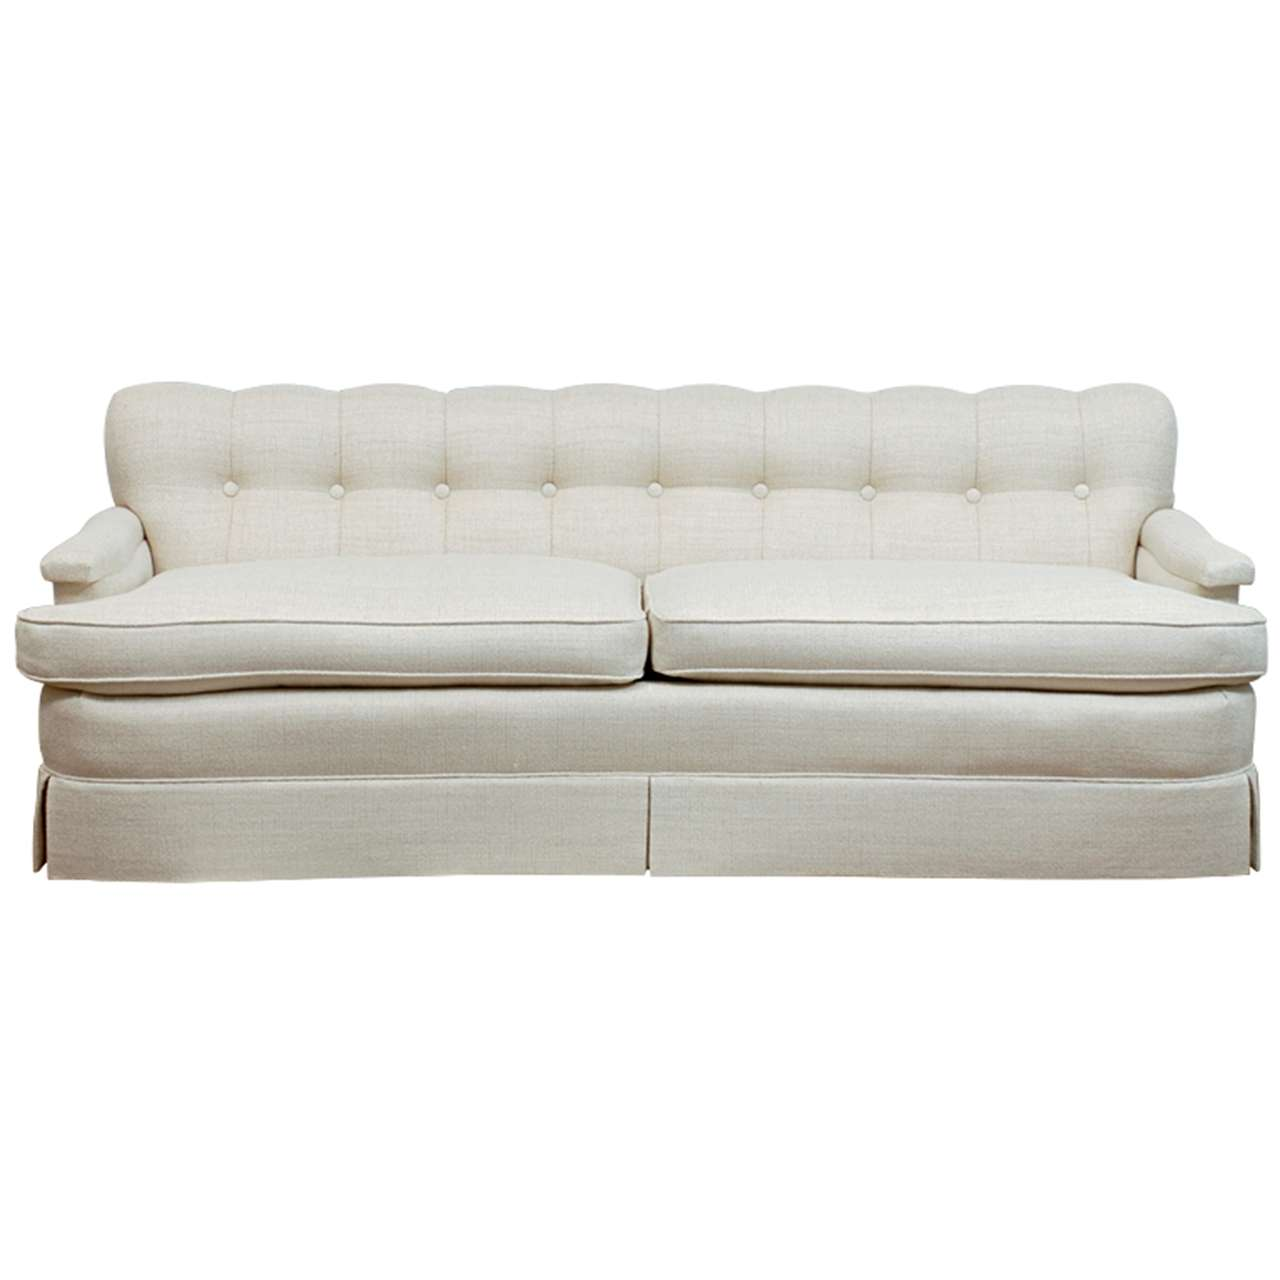 Elegant Vintage Sofa In The Style Of Billy Haines At 1stdibs